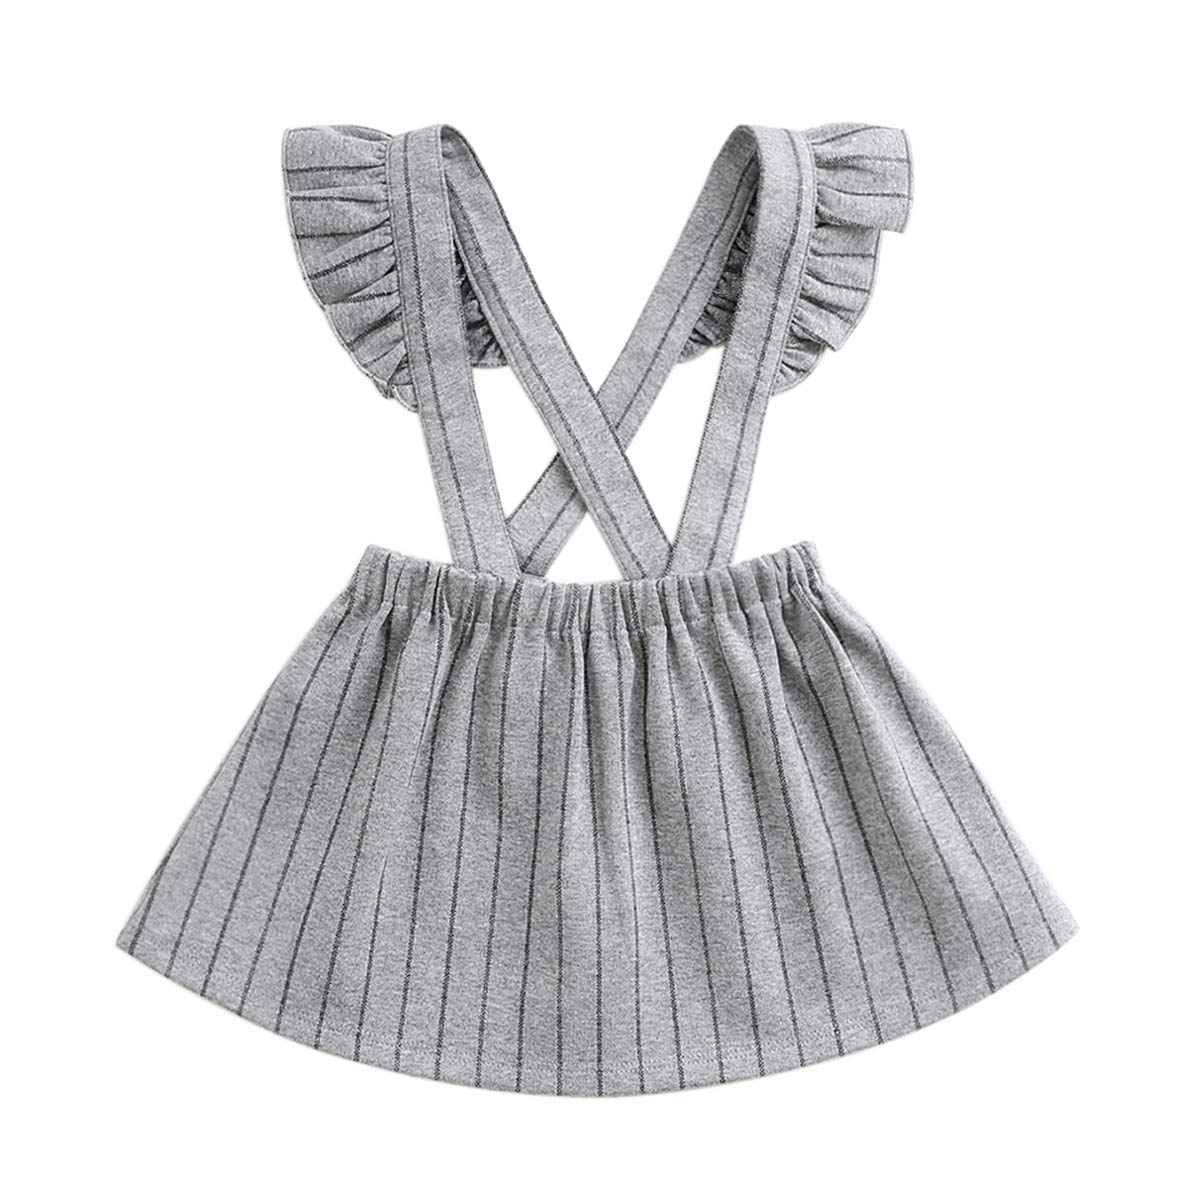 marc janie Little Girls' Fashion Suspender Skirt Baby Girls Jumpsuit Strap Overall Dress TQ70071